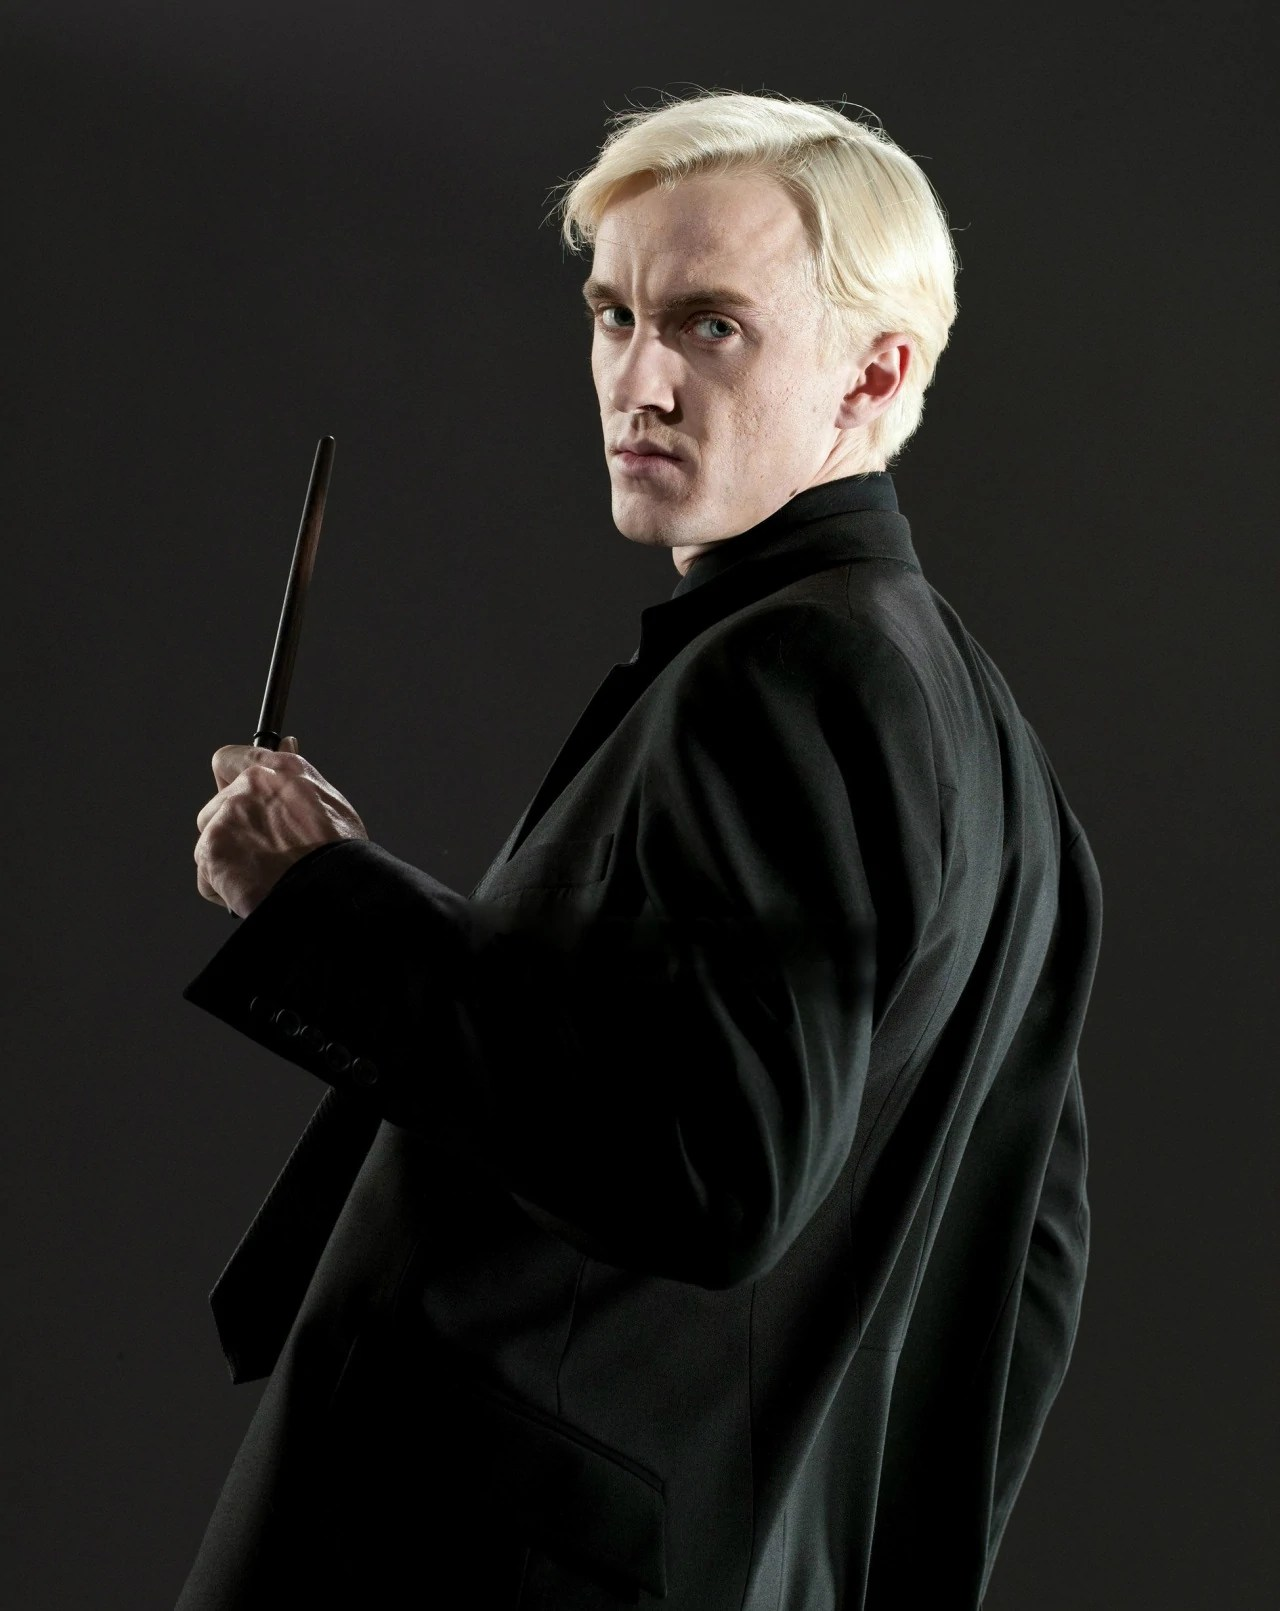 Harry Potter And The Deathly Hallows Wallpaper Hd Draco Malfoy Prince S World Harry Potter Fanon Wiki